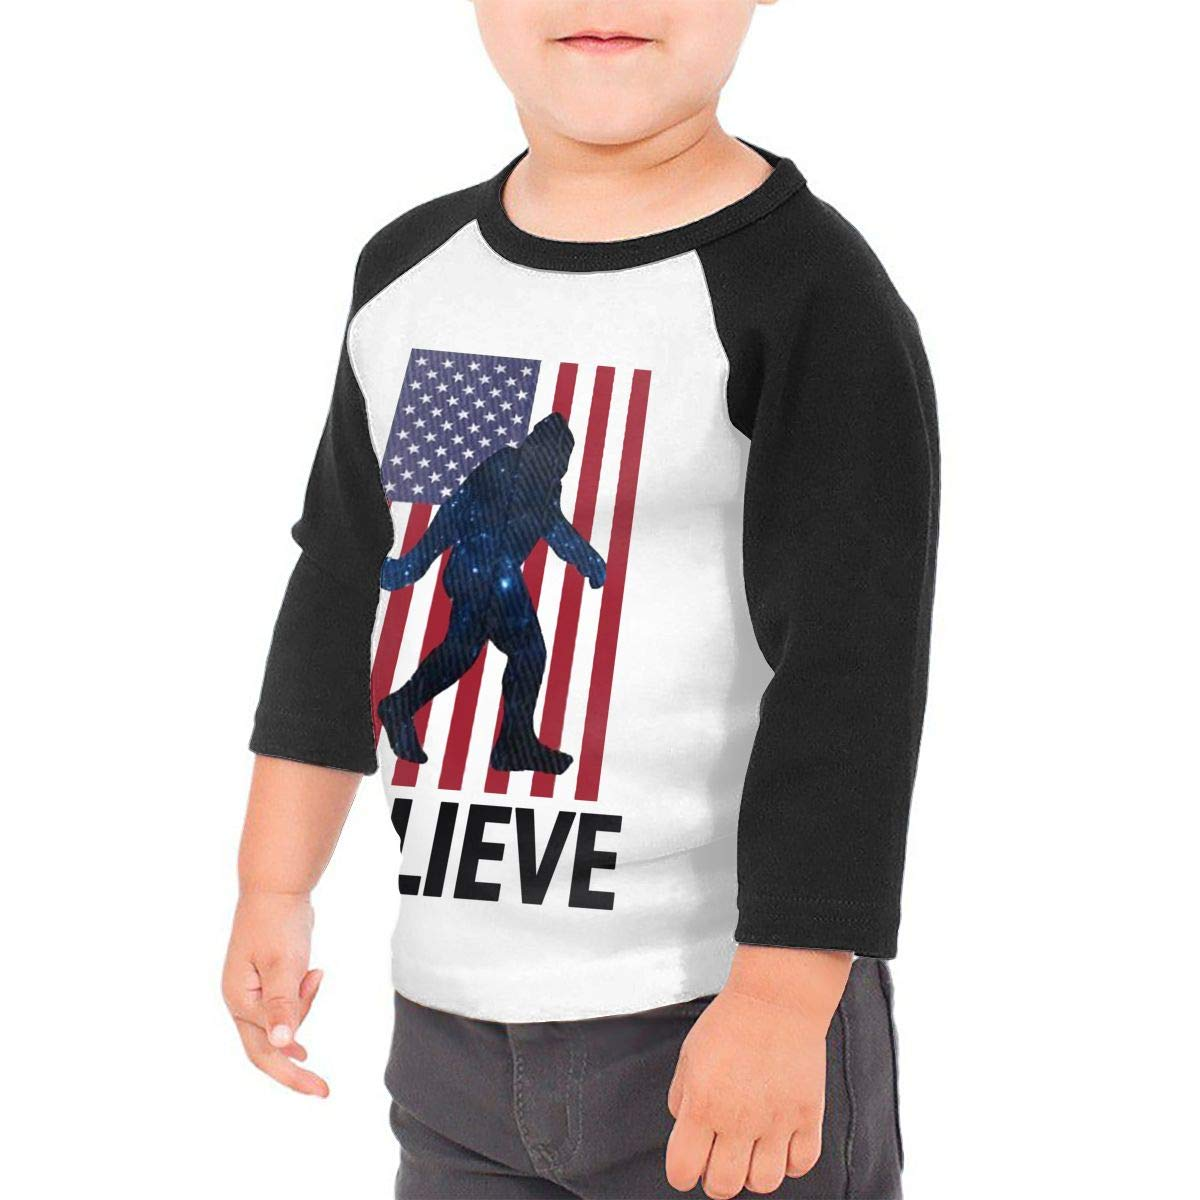 Manlee I Believe Sasquatch Unisex 100/% Cotton Childrens 3//4 Sleeves T-Shirt Top Tees 2T~5//6T